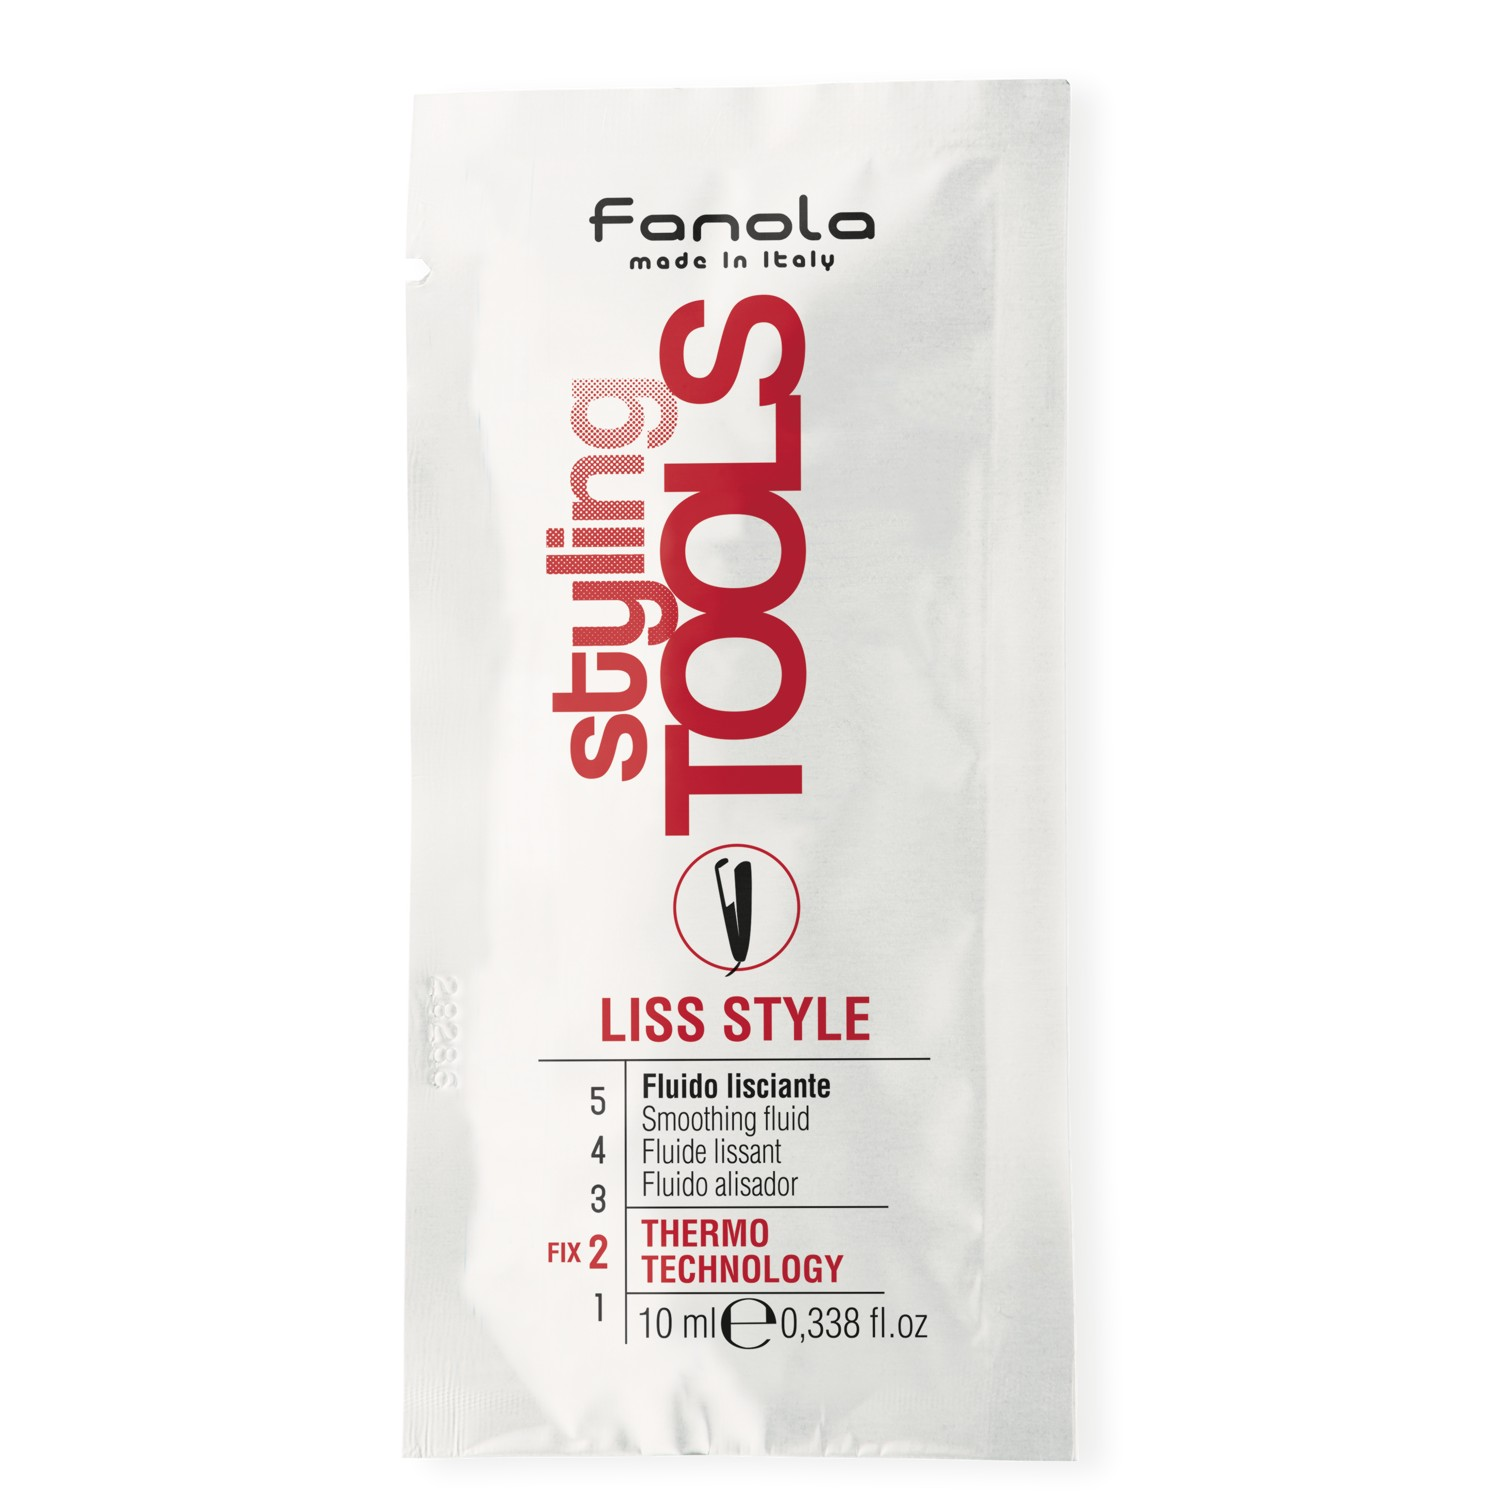 Fanola Styling Tools Liss Style 10 ml